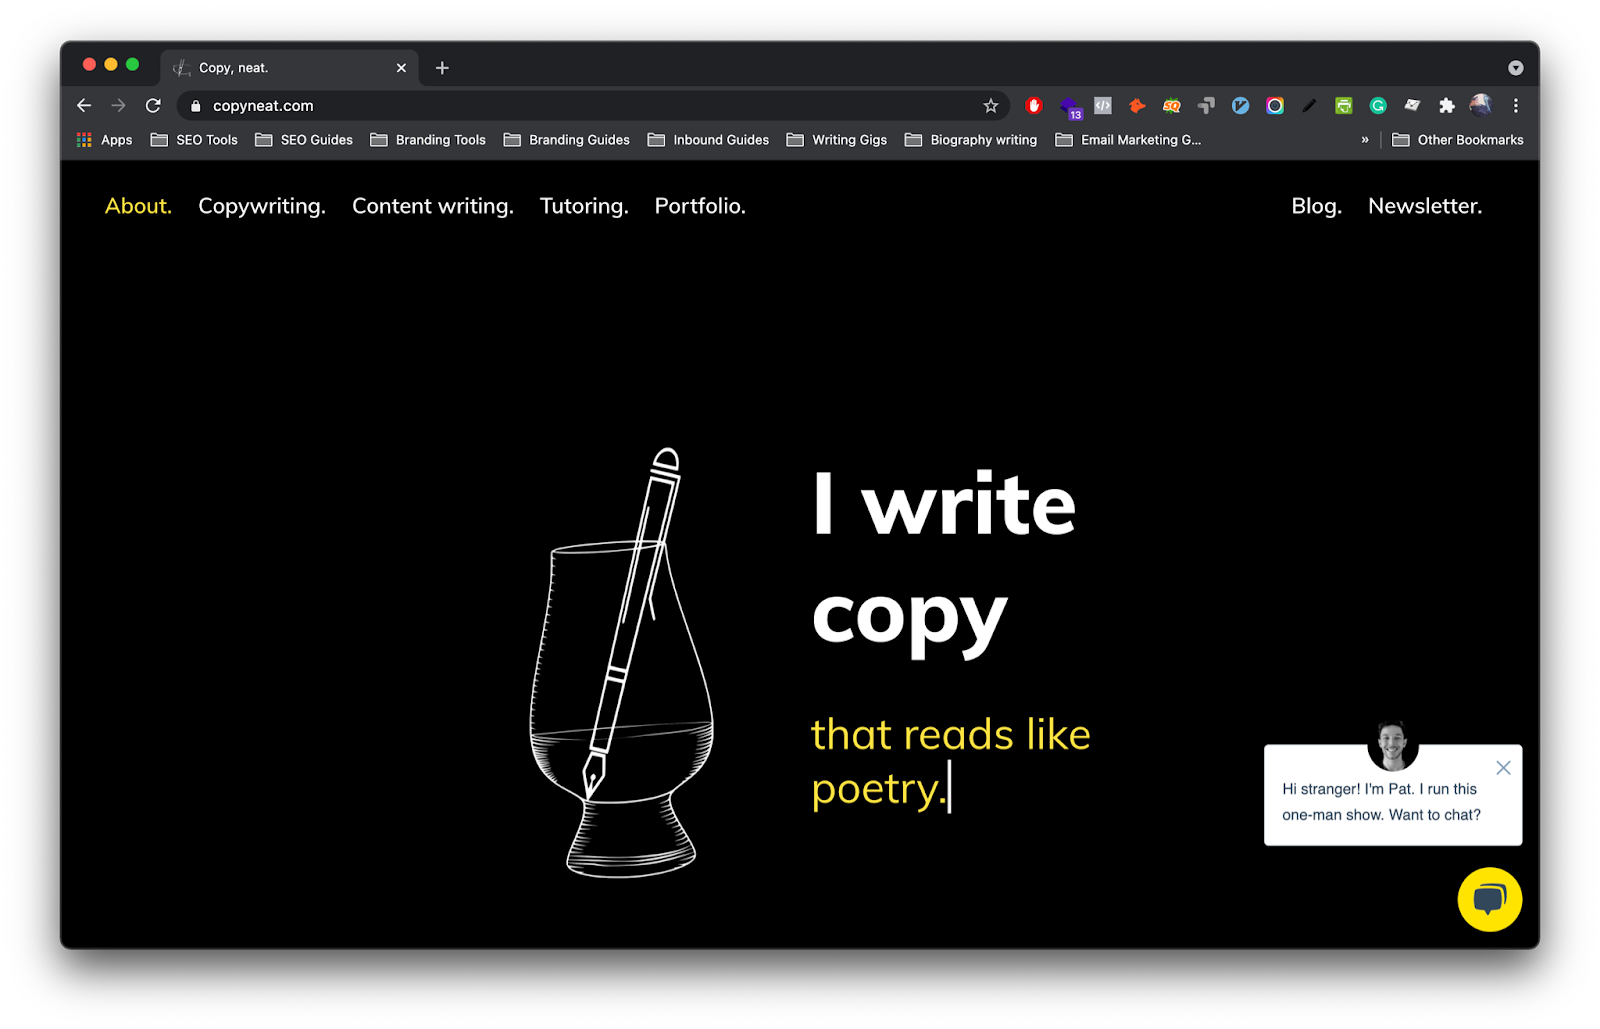 A screenshot of the homepage of my website, copyneat.com